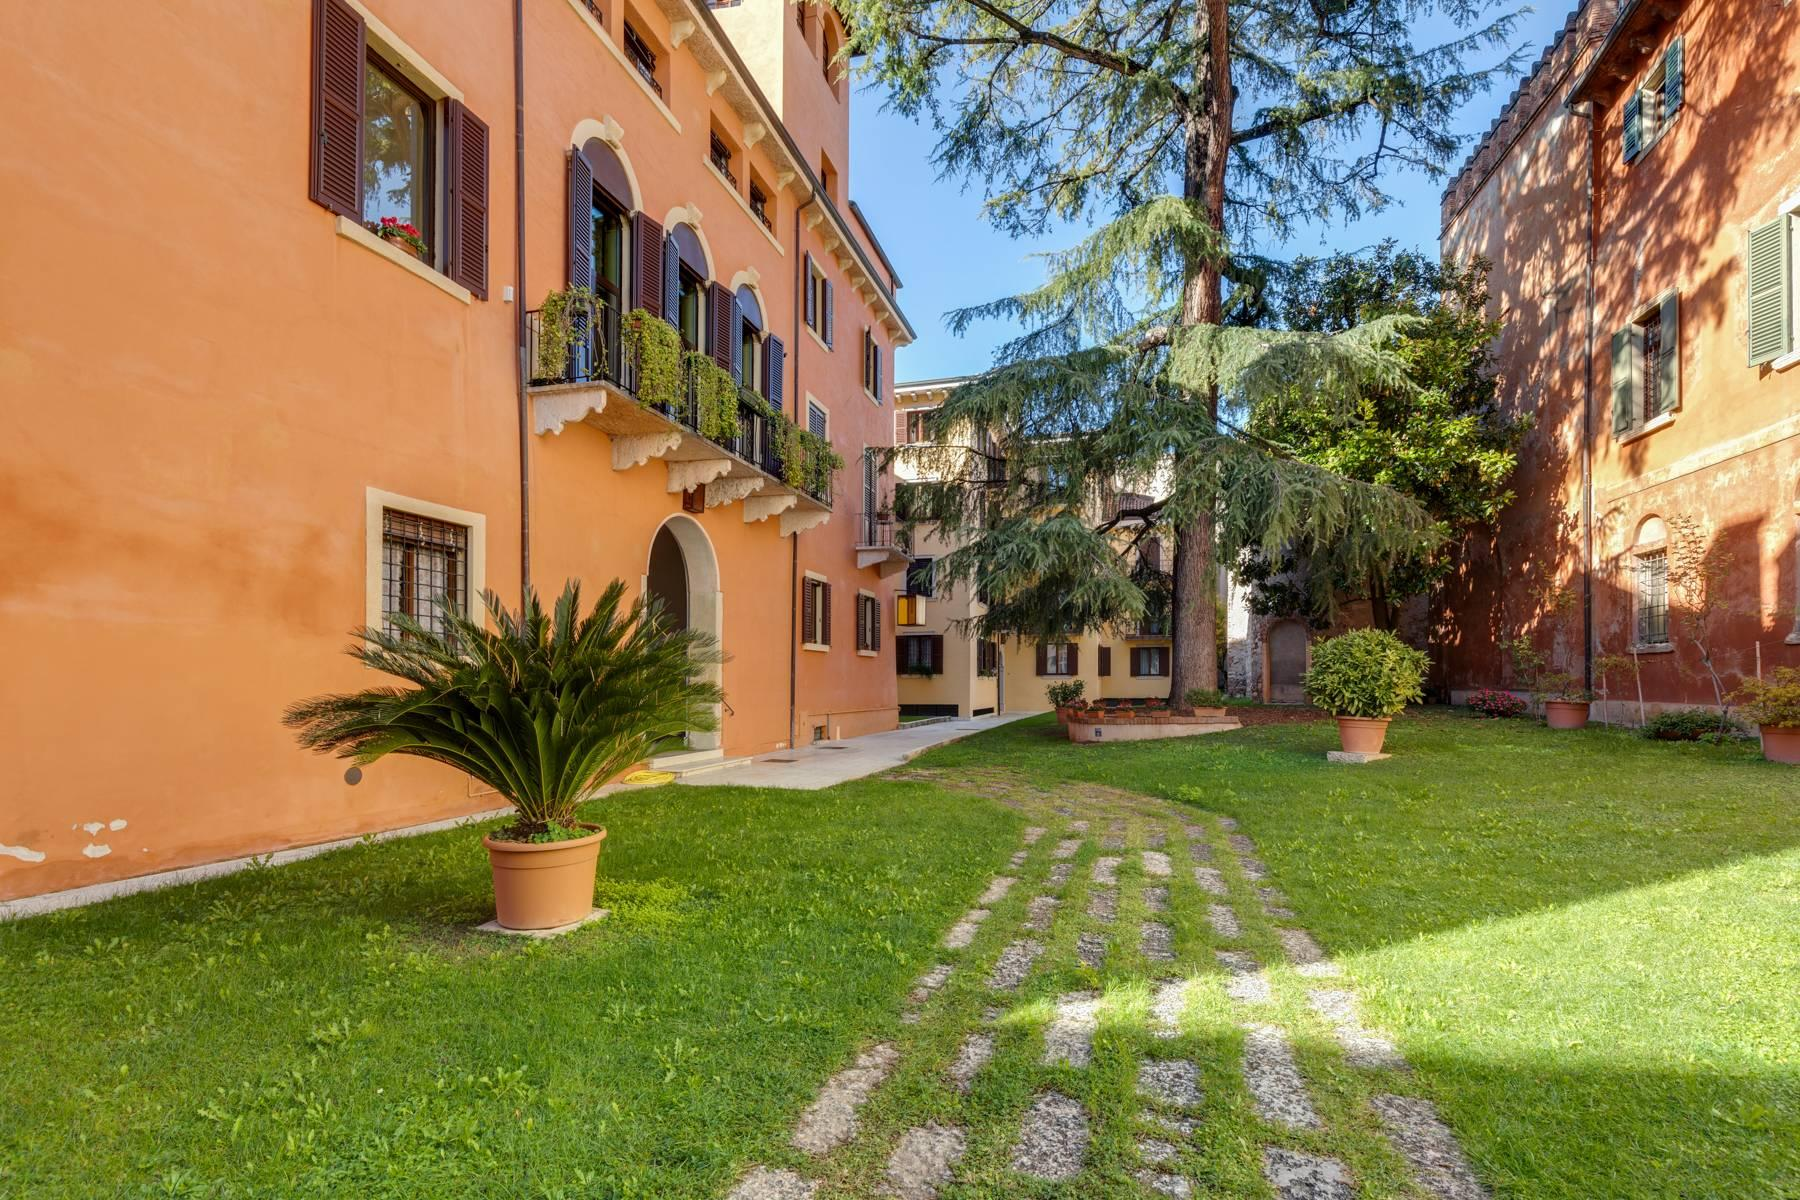 Penthouse in the heart of Verona - 2